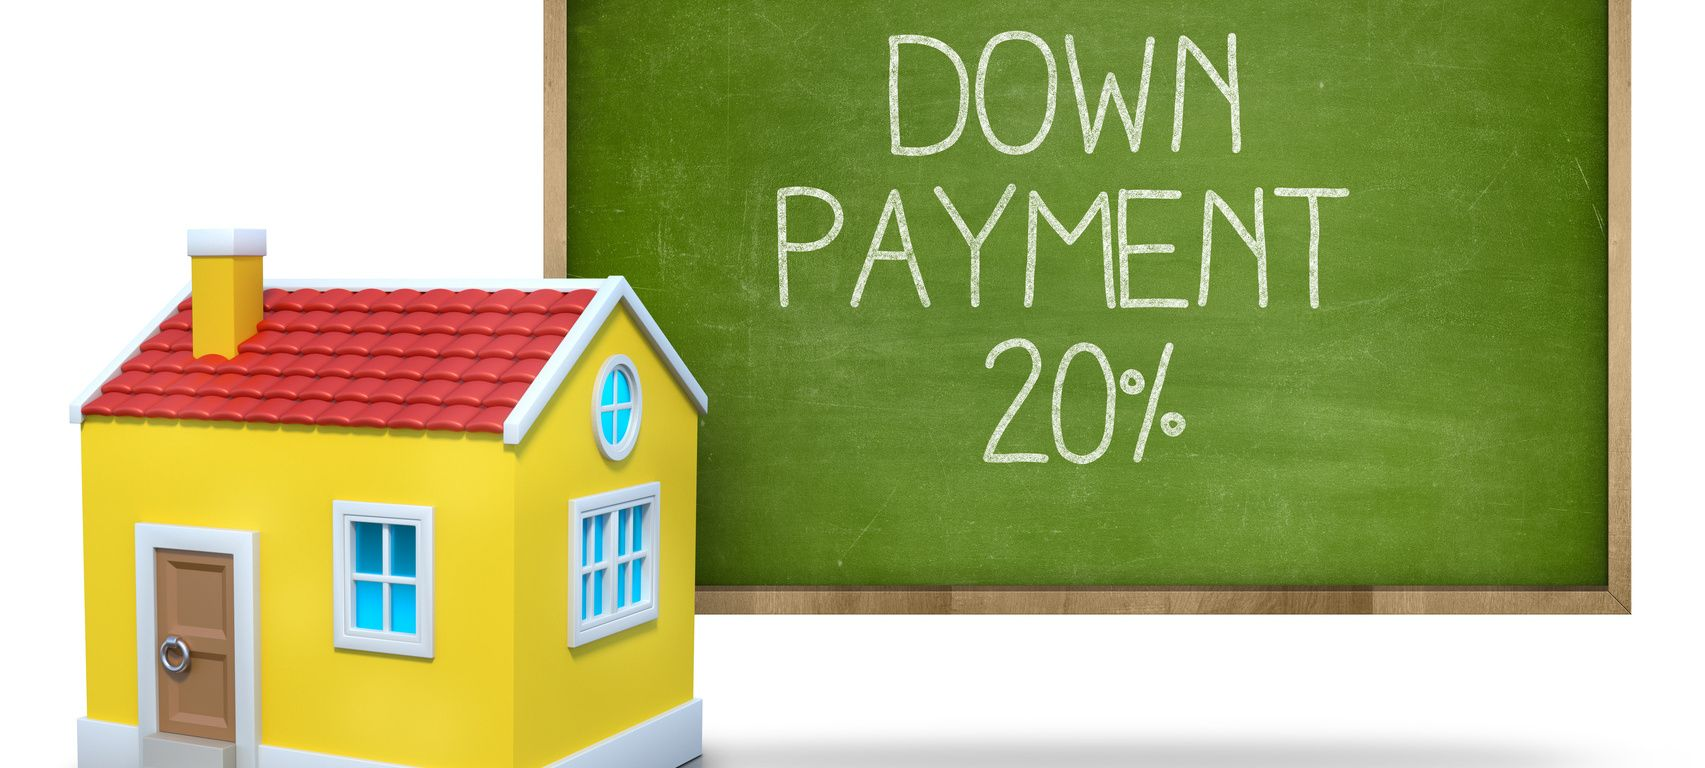 Is It Good Idea To Avail A Personal Loan For Home Loan Down Payment Rent Vs Buy Home Buying Process Reverse Mortgage